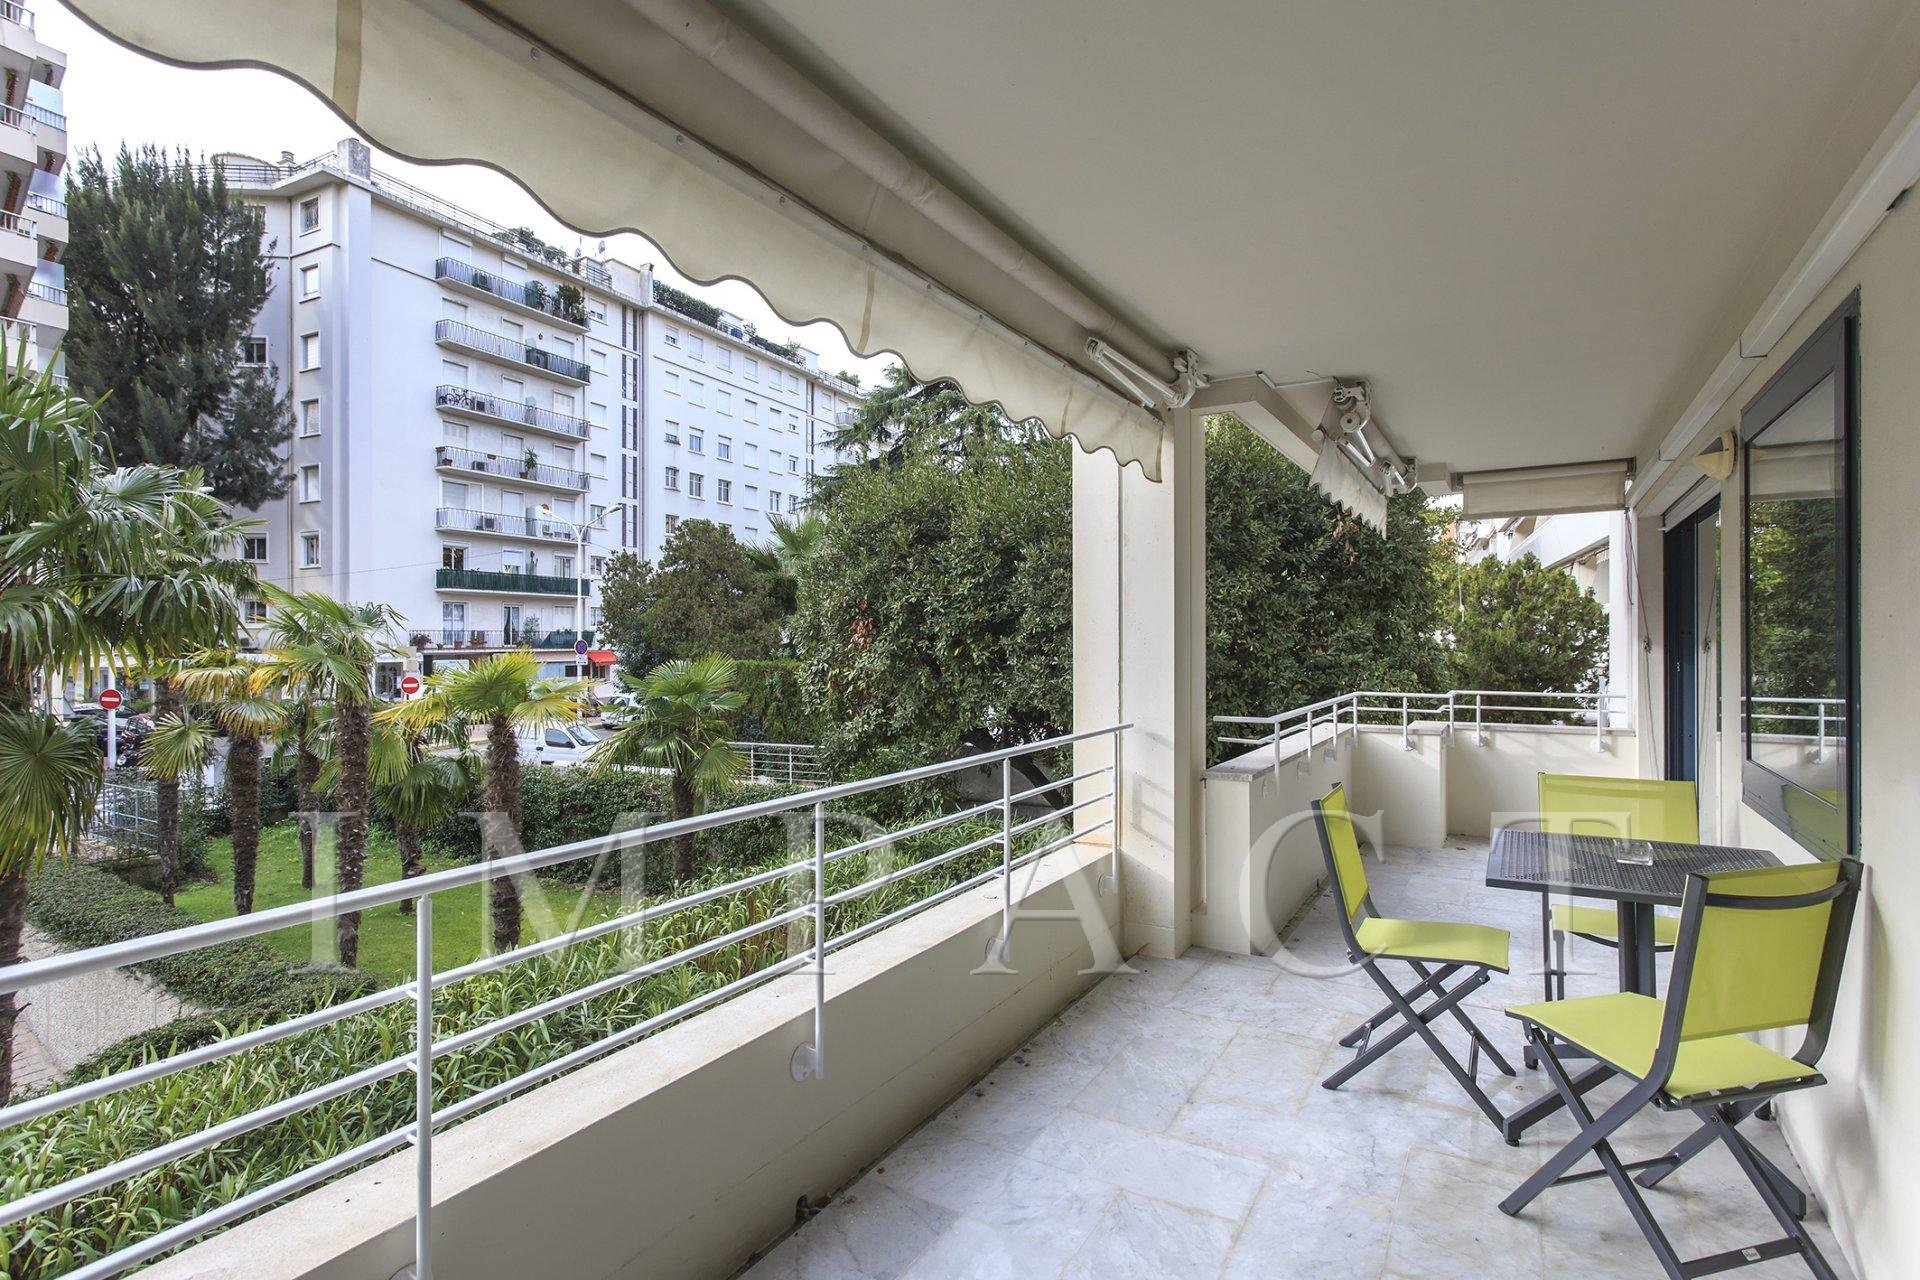 Apartment to rent, garden view, in the city center of Cannes